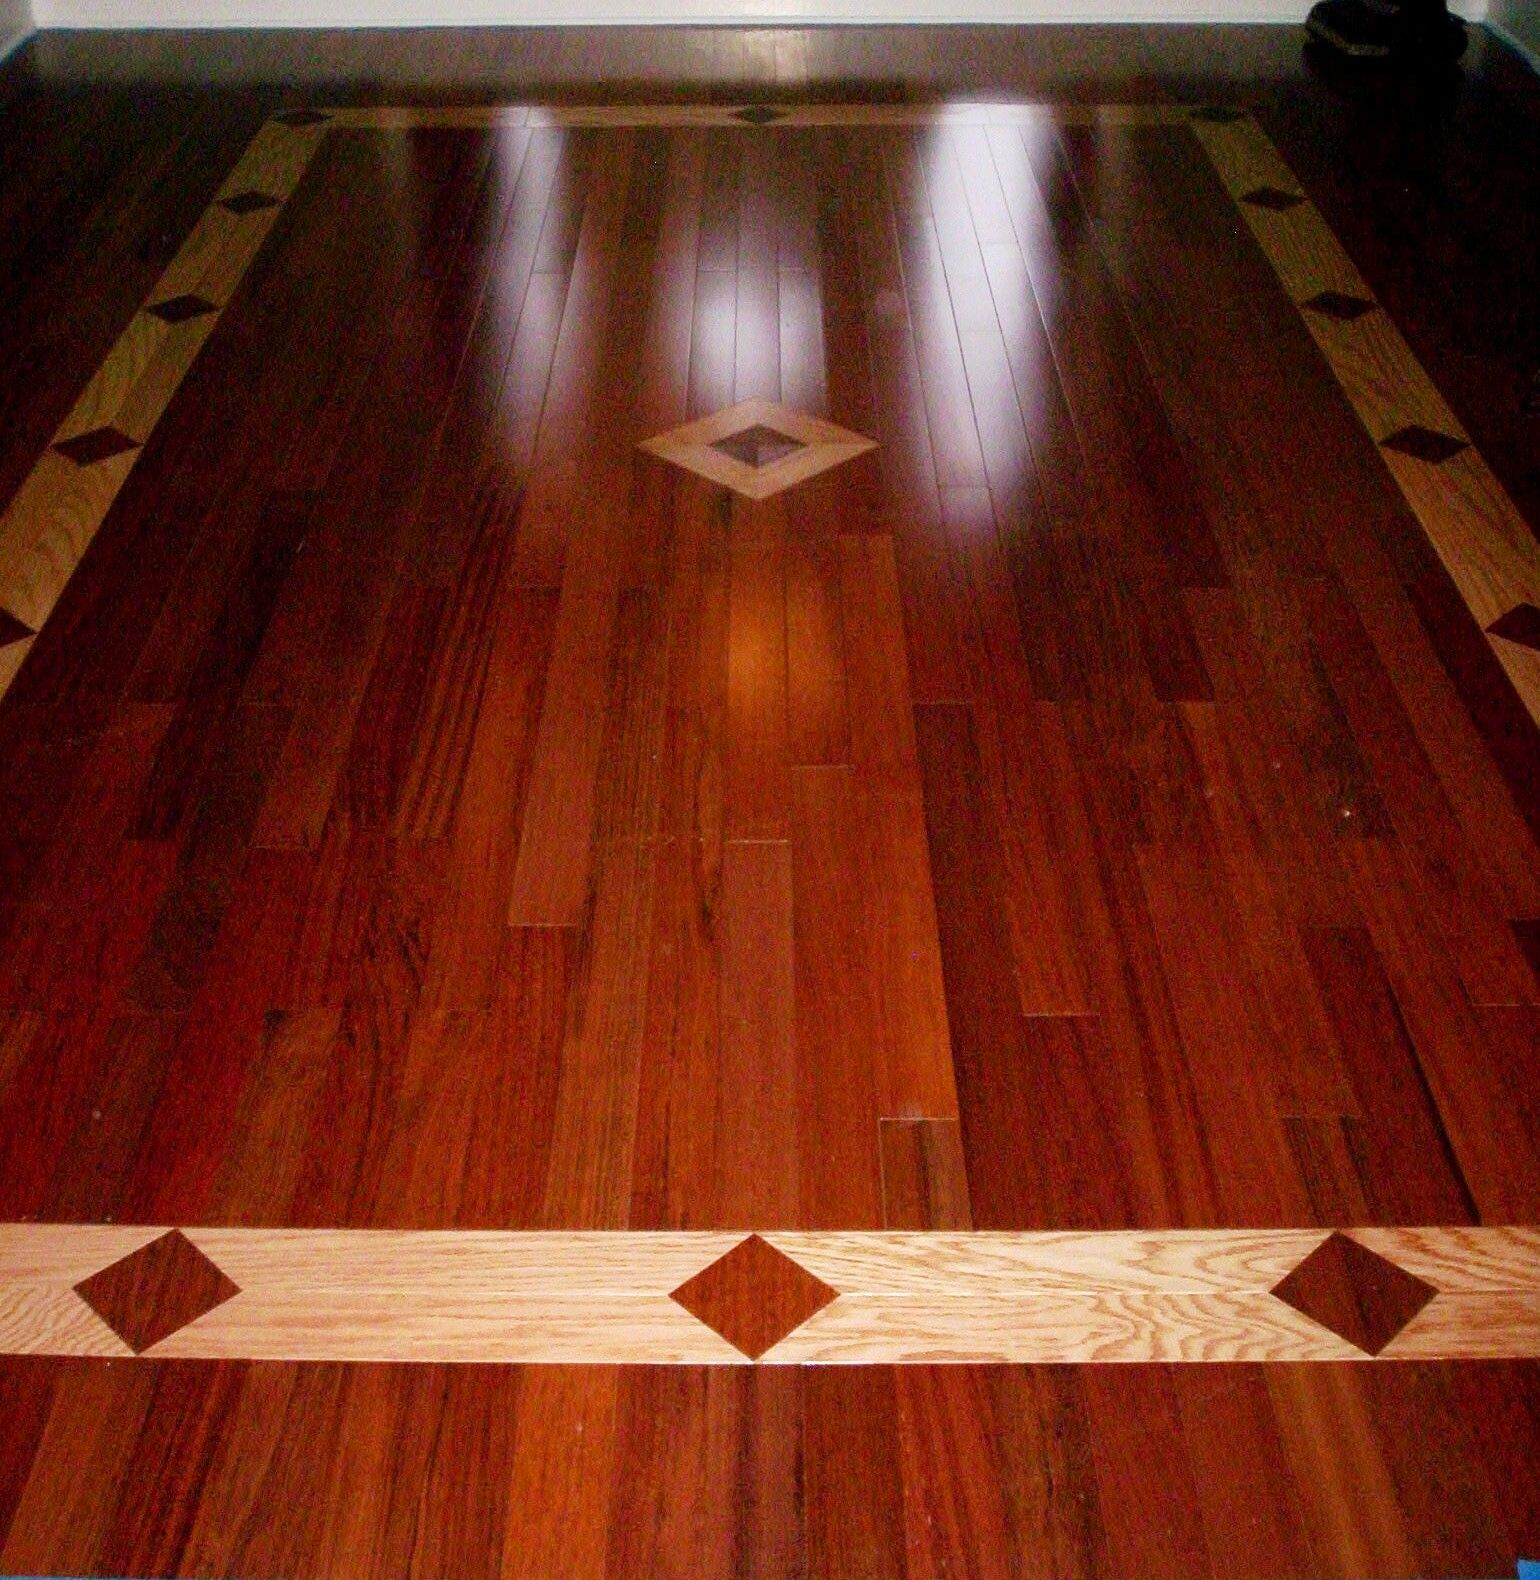 Cherry Hardwood Flooring httpblogmercercarpetonecom2011_01_01_archivehtml brazilian cherry hardwood Wood Flooring